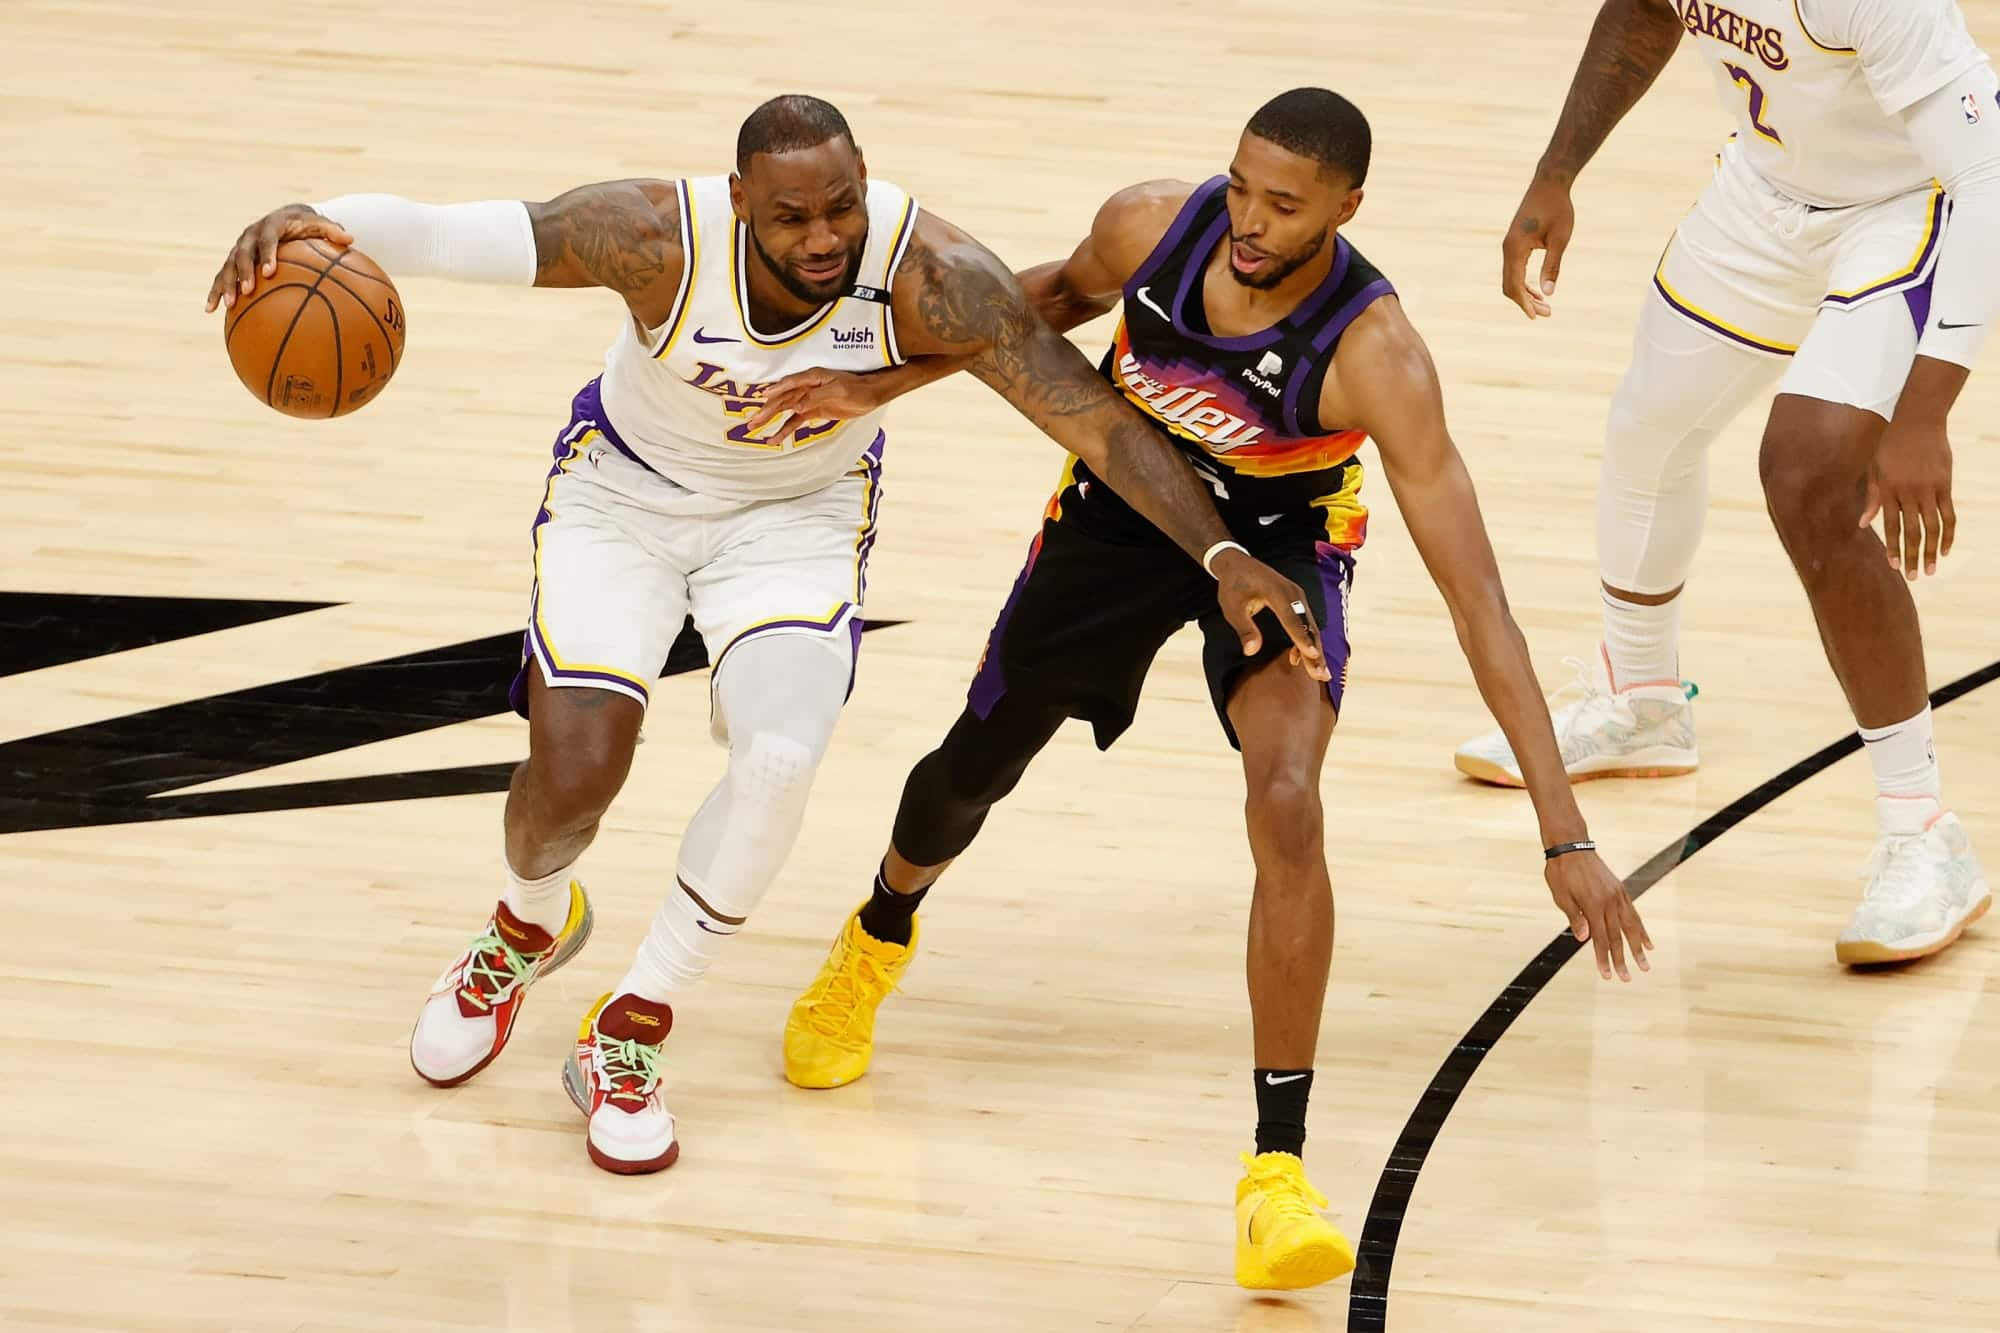 3-avid-gamers-who-must-step-up-and-divulge-for-lakers-in-recreation-2-vs-suns.jpeg